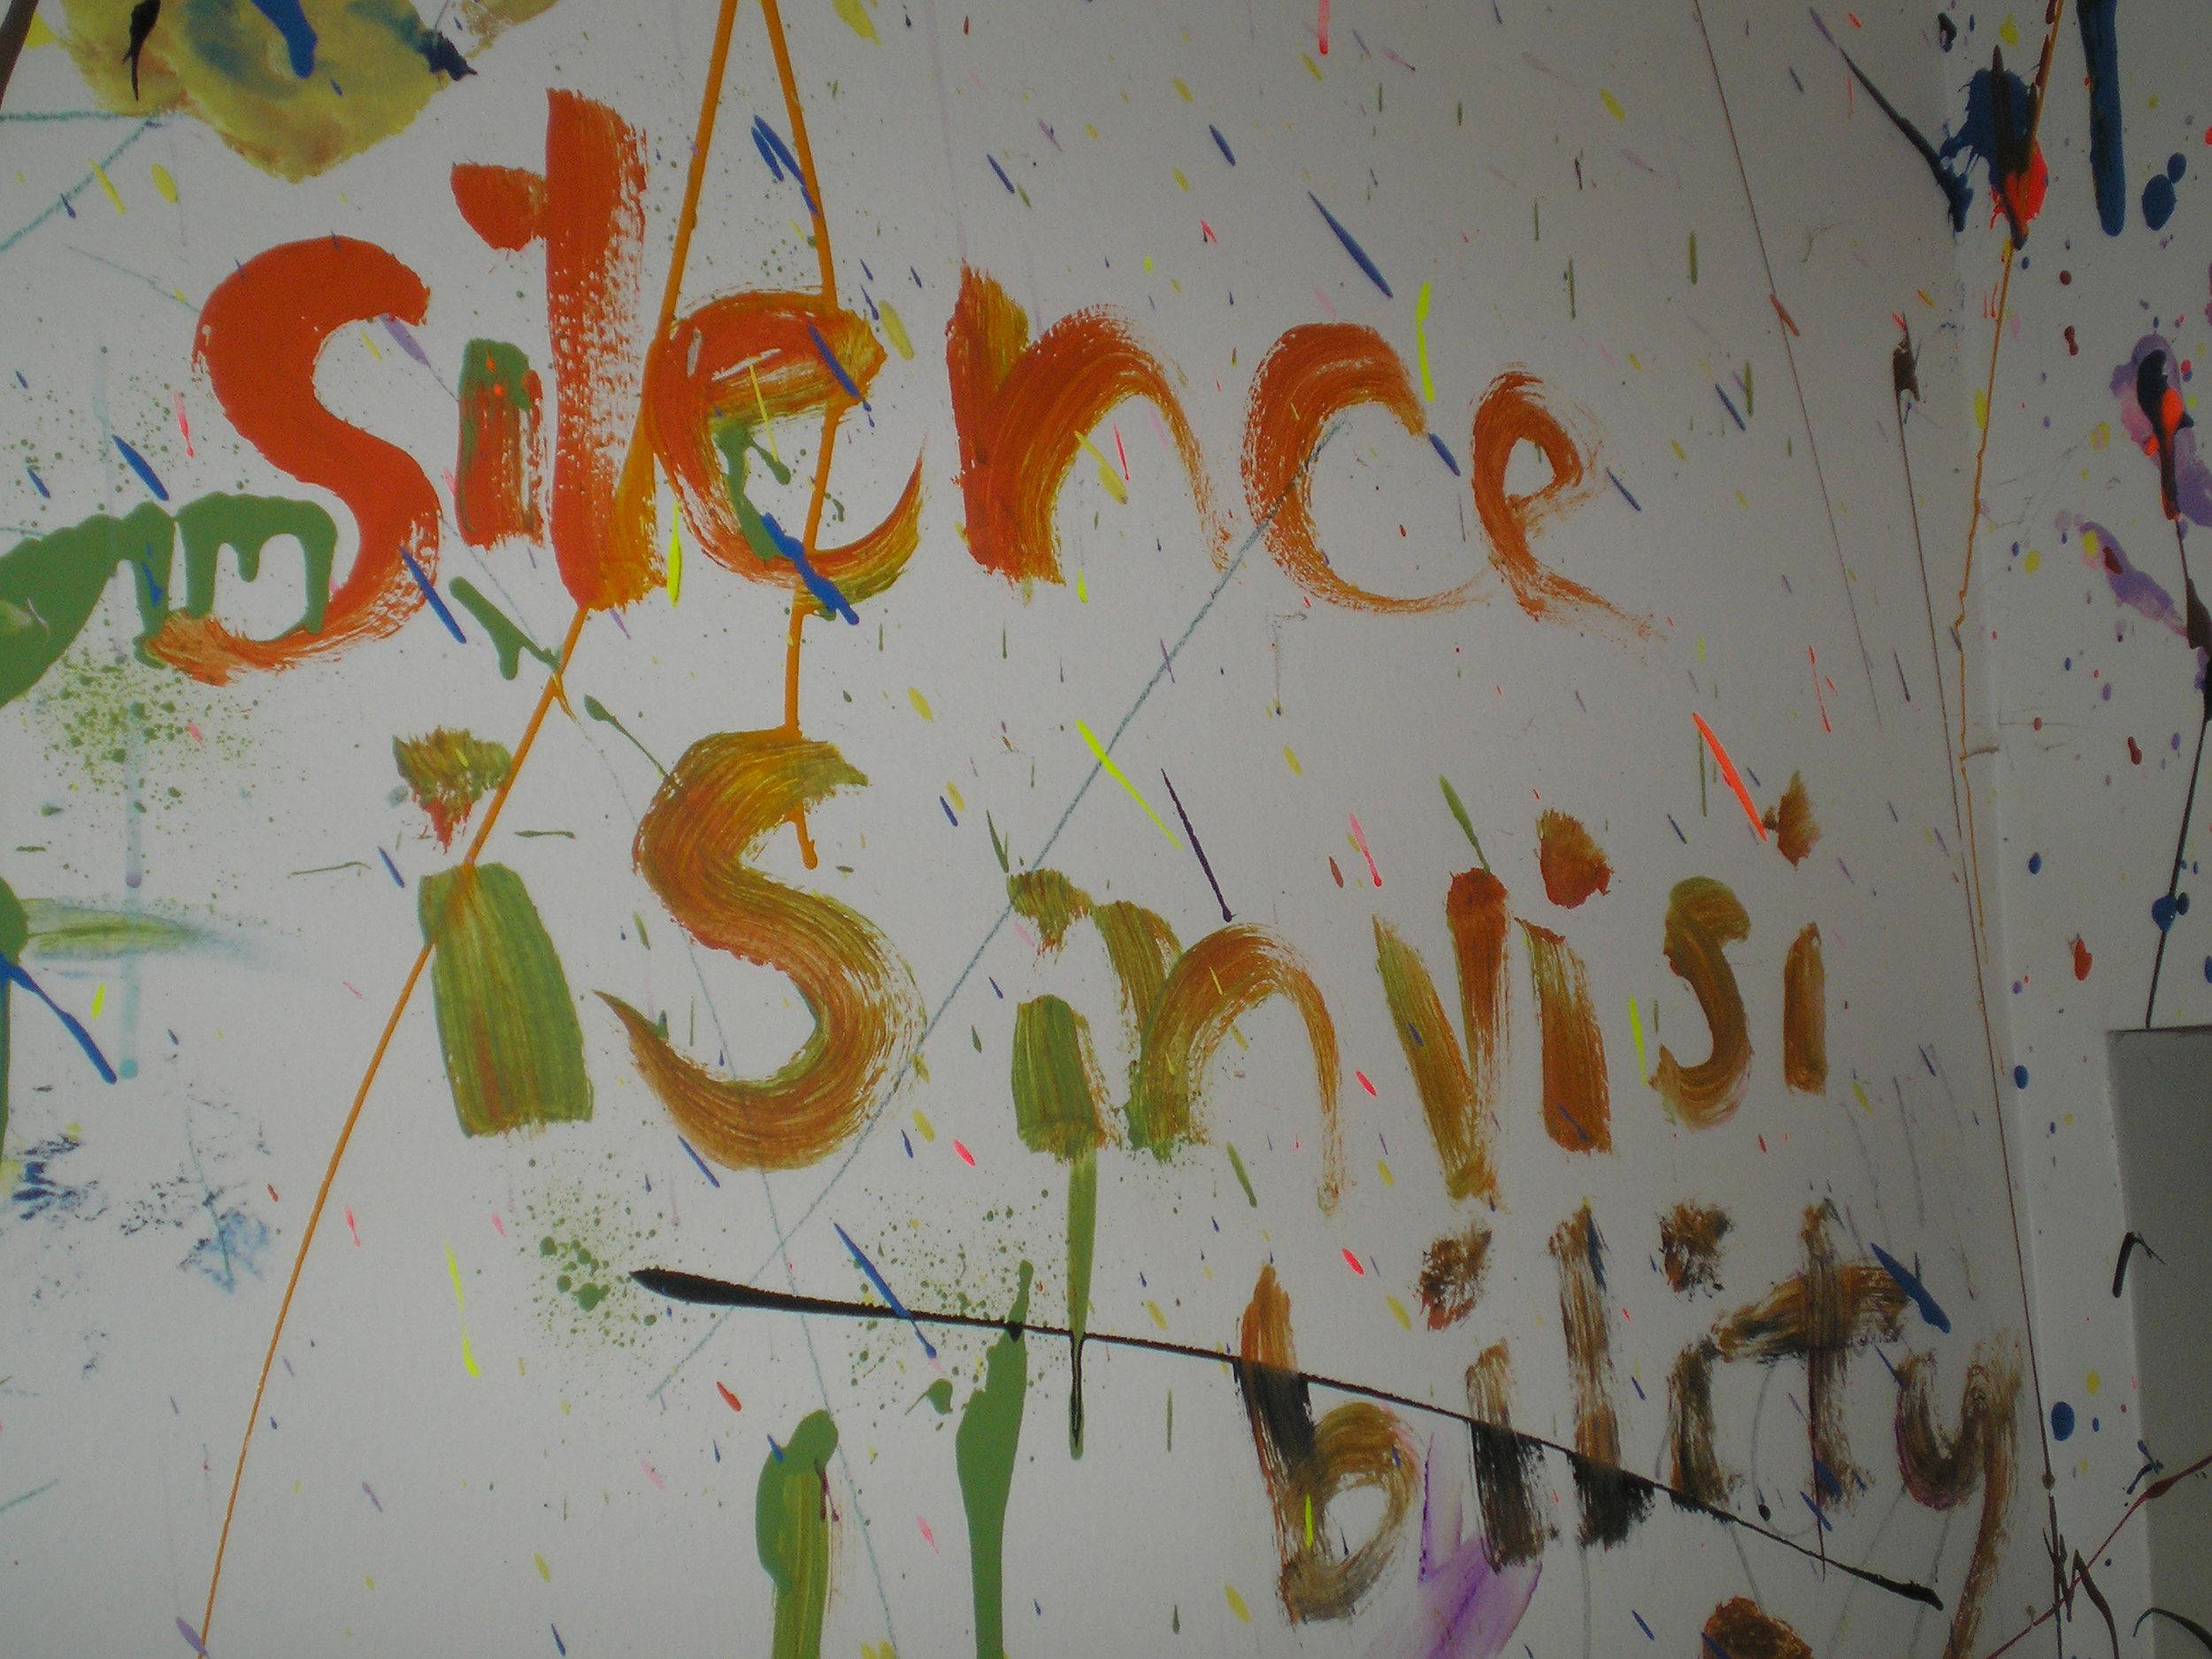 'Silence is Invisibility', by Melina Vanni-González. Source:    Flickr.    White wall, flecked with paint, with graffiti in orange and red stating 'silence is invisibility'. (CC BY-SA 2.0.)